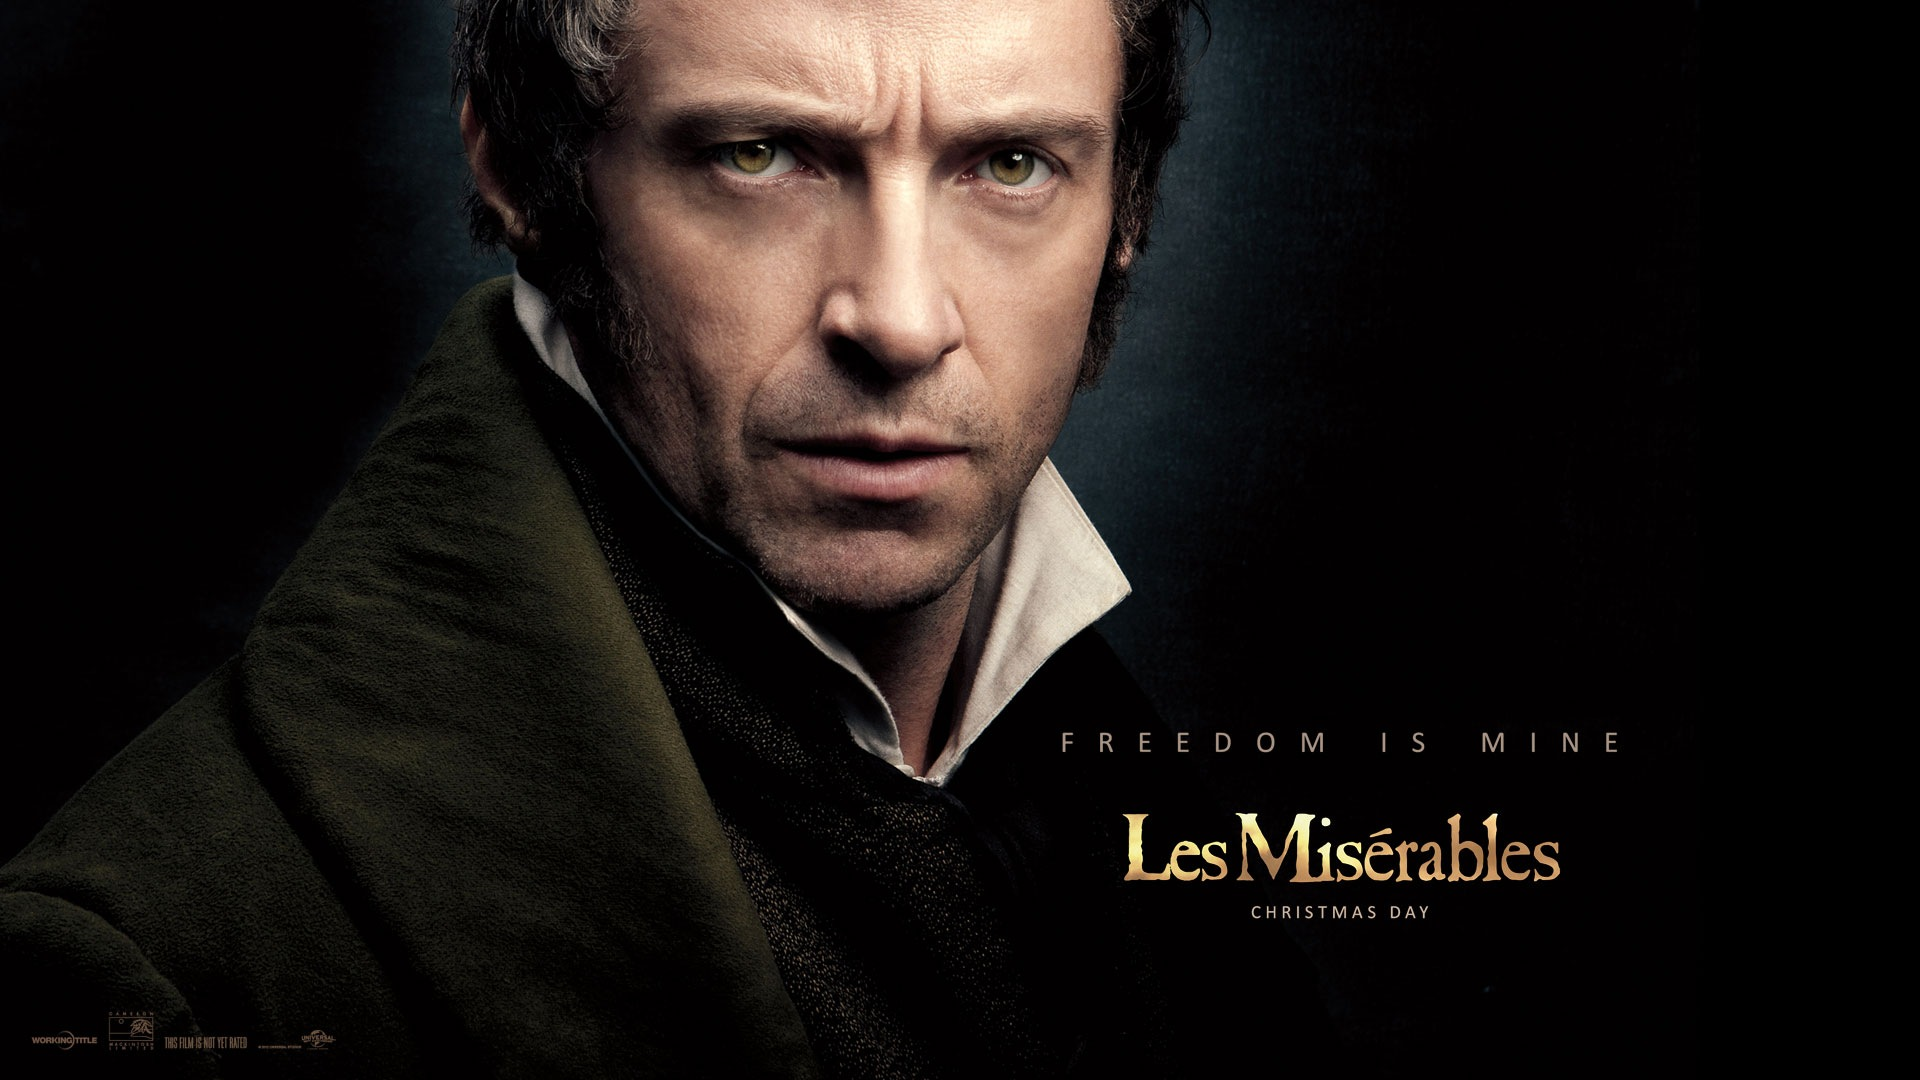 Les Miserables HD wallpapers #21 - 1920x1080